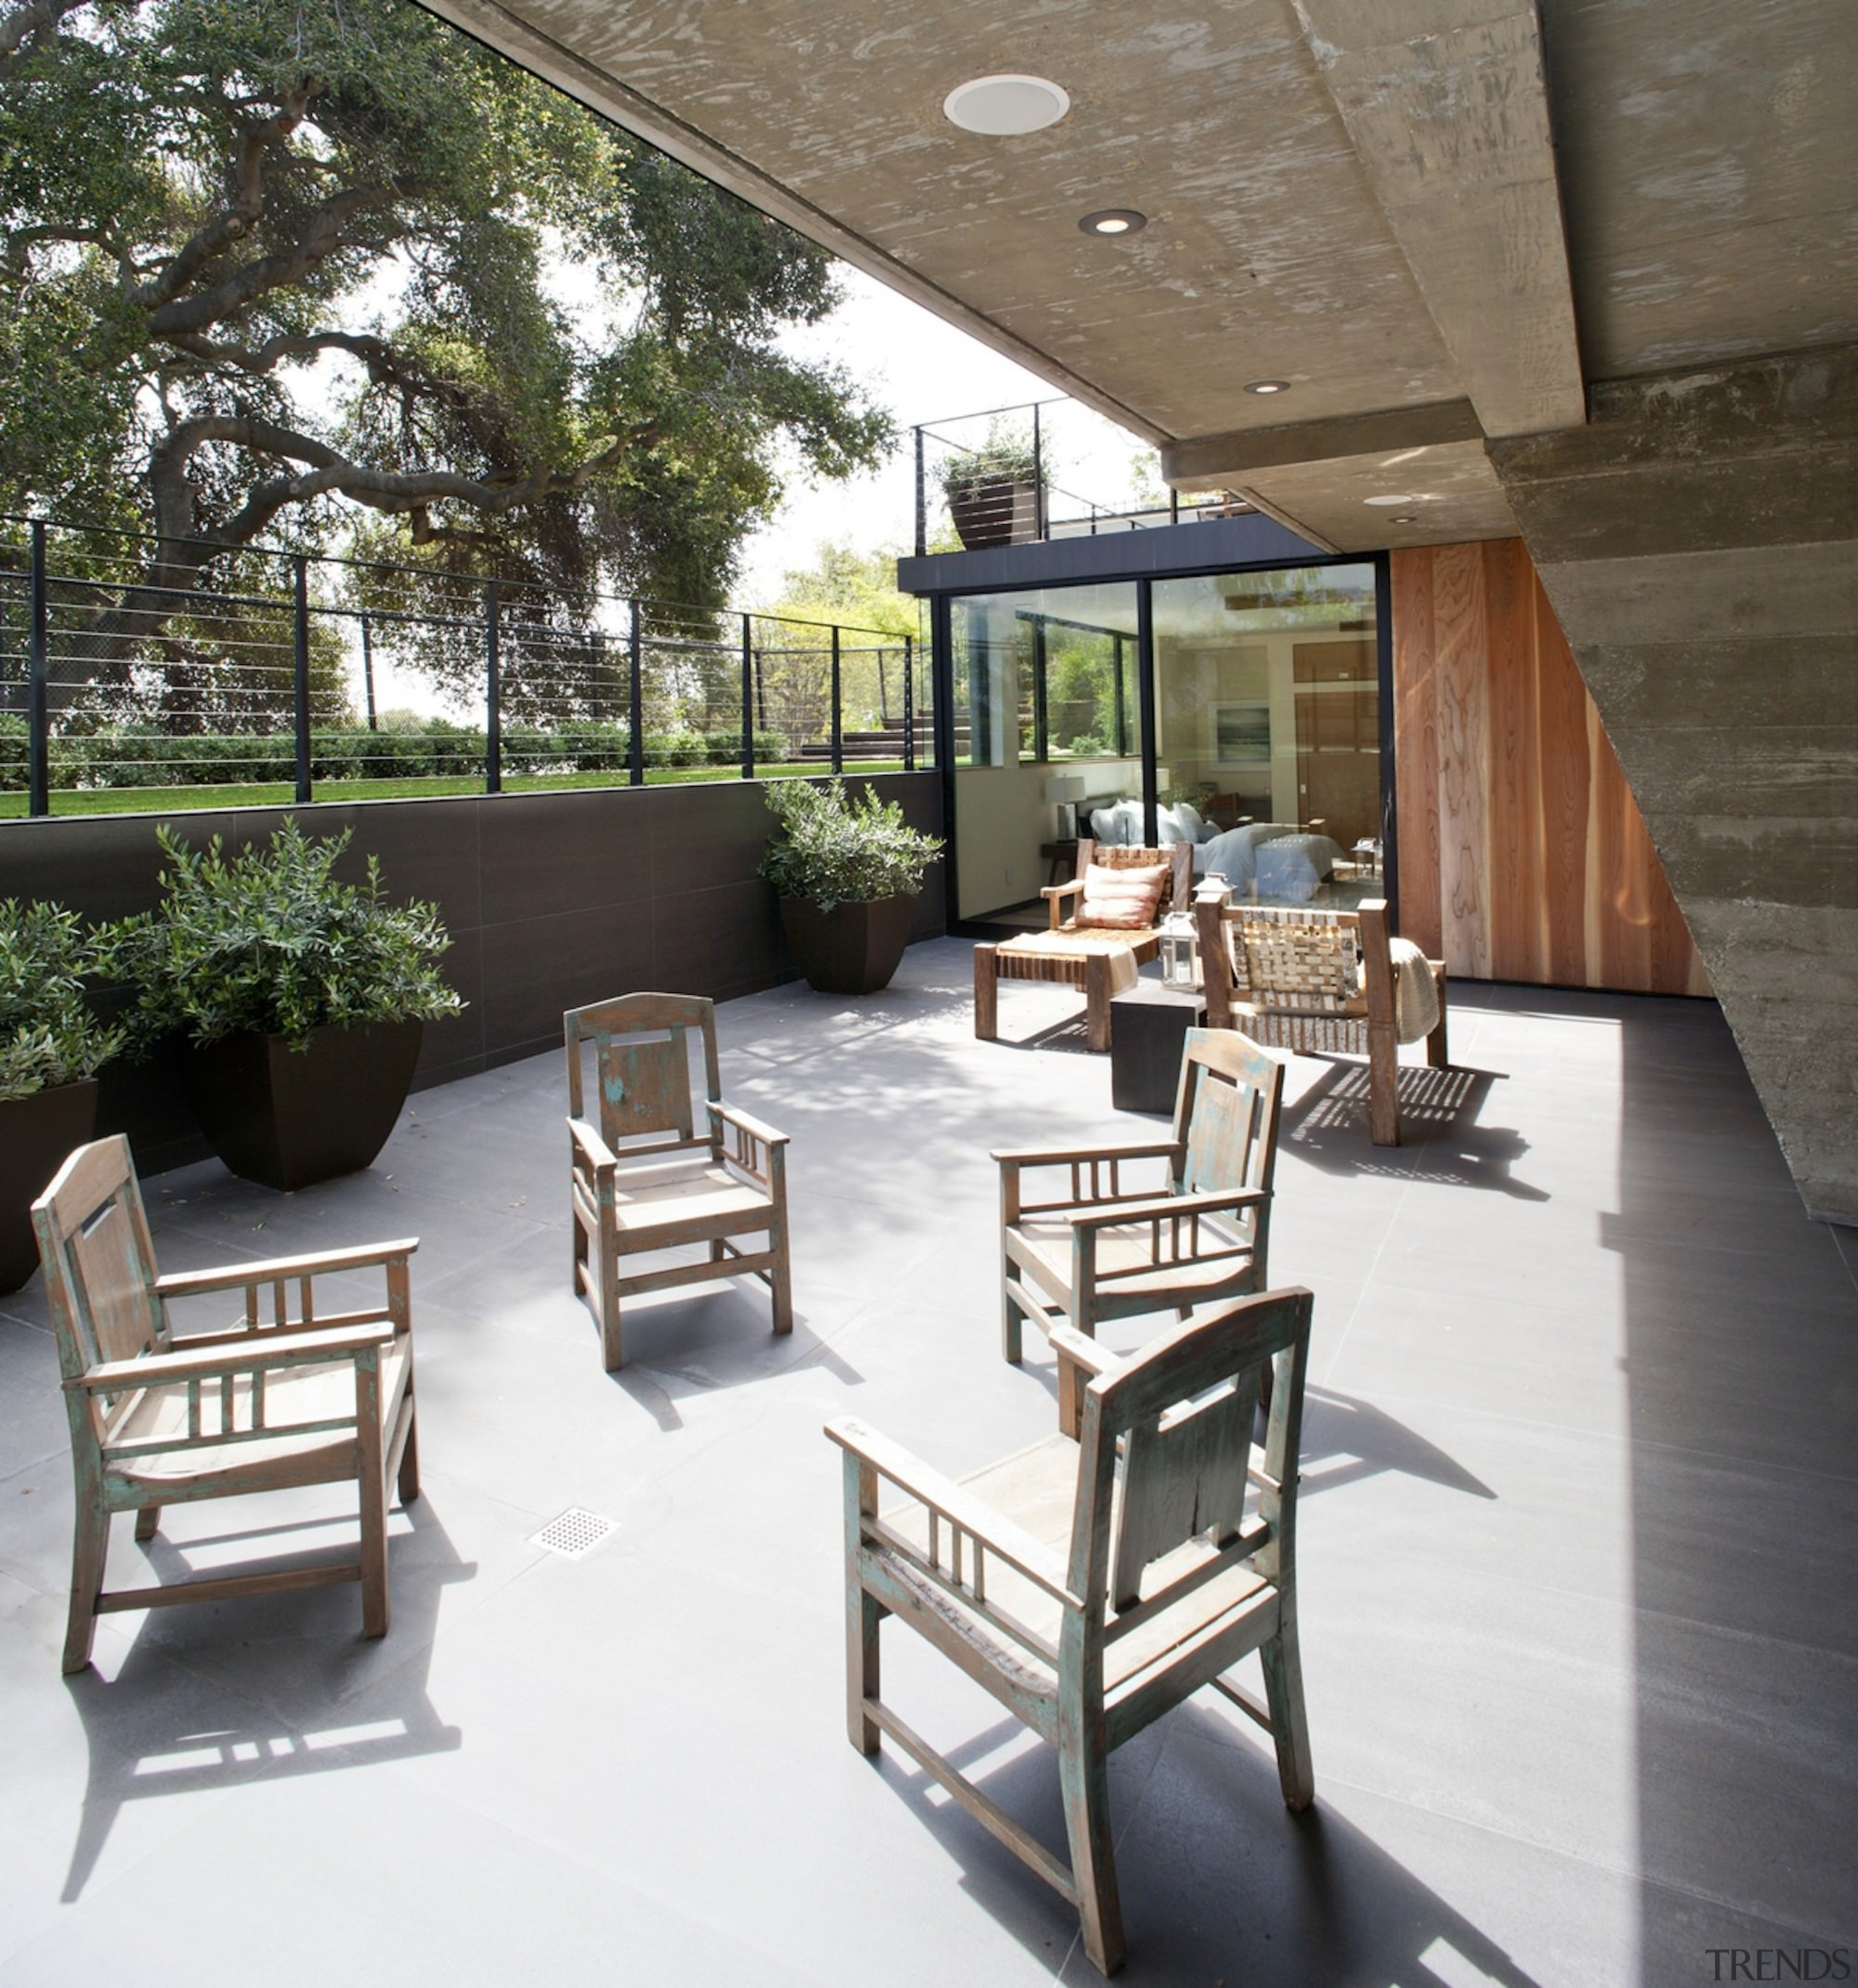 A sunken outdoor area - A sunken outdoor architecture, furniture, interior design, outdoor structure, patio, table, white